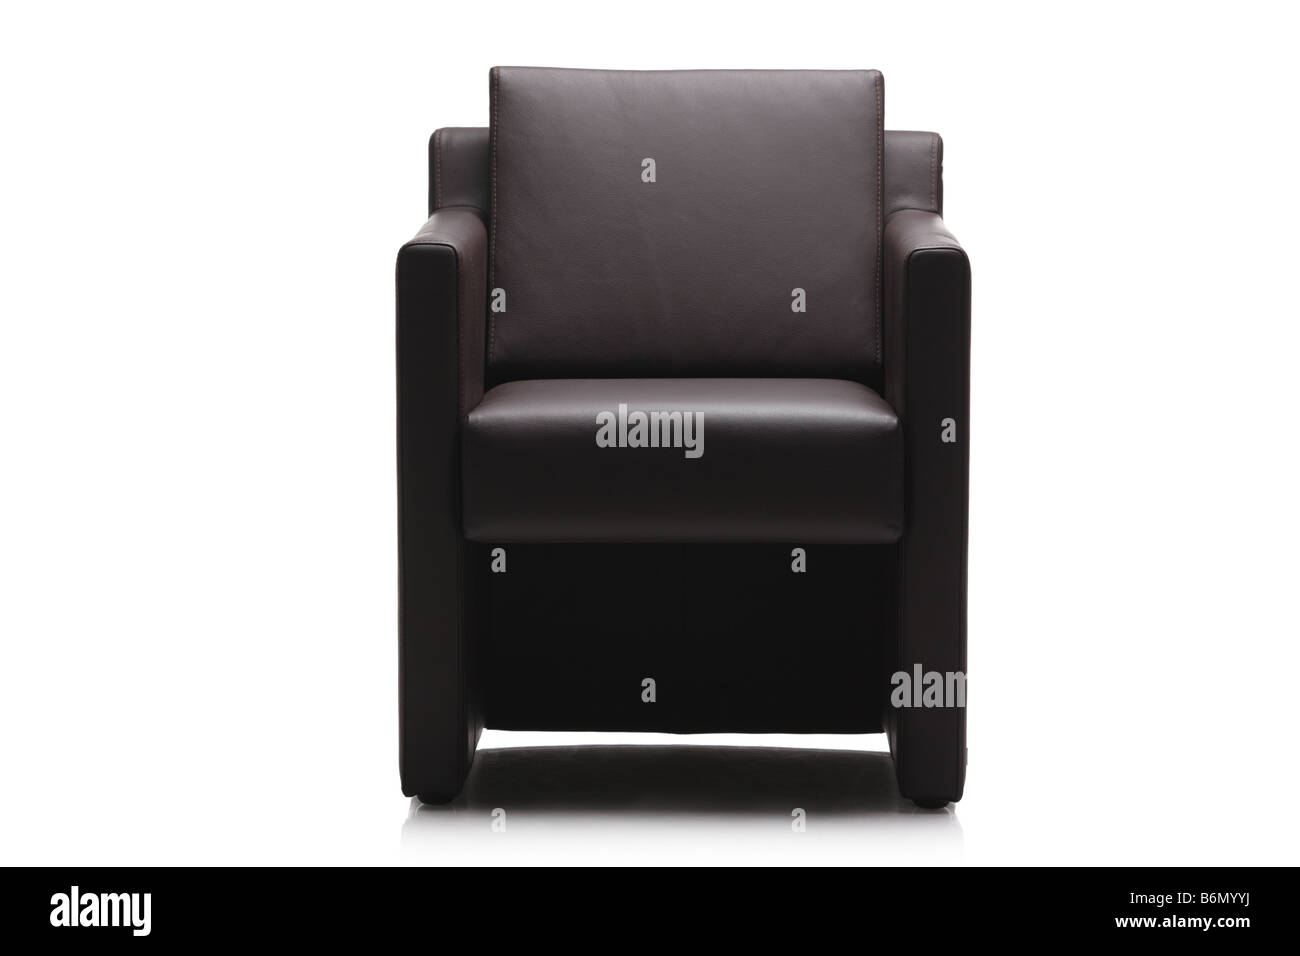 Image Of A Modern Black Leather Armchair   Stock Image